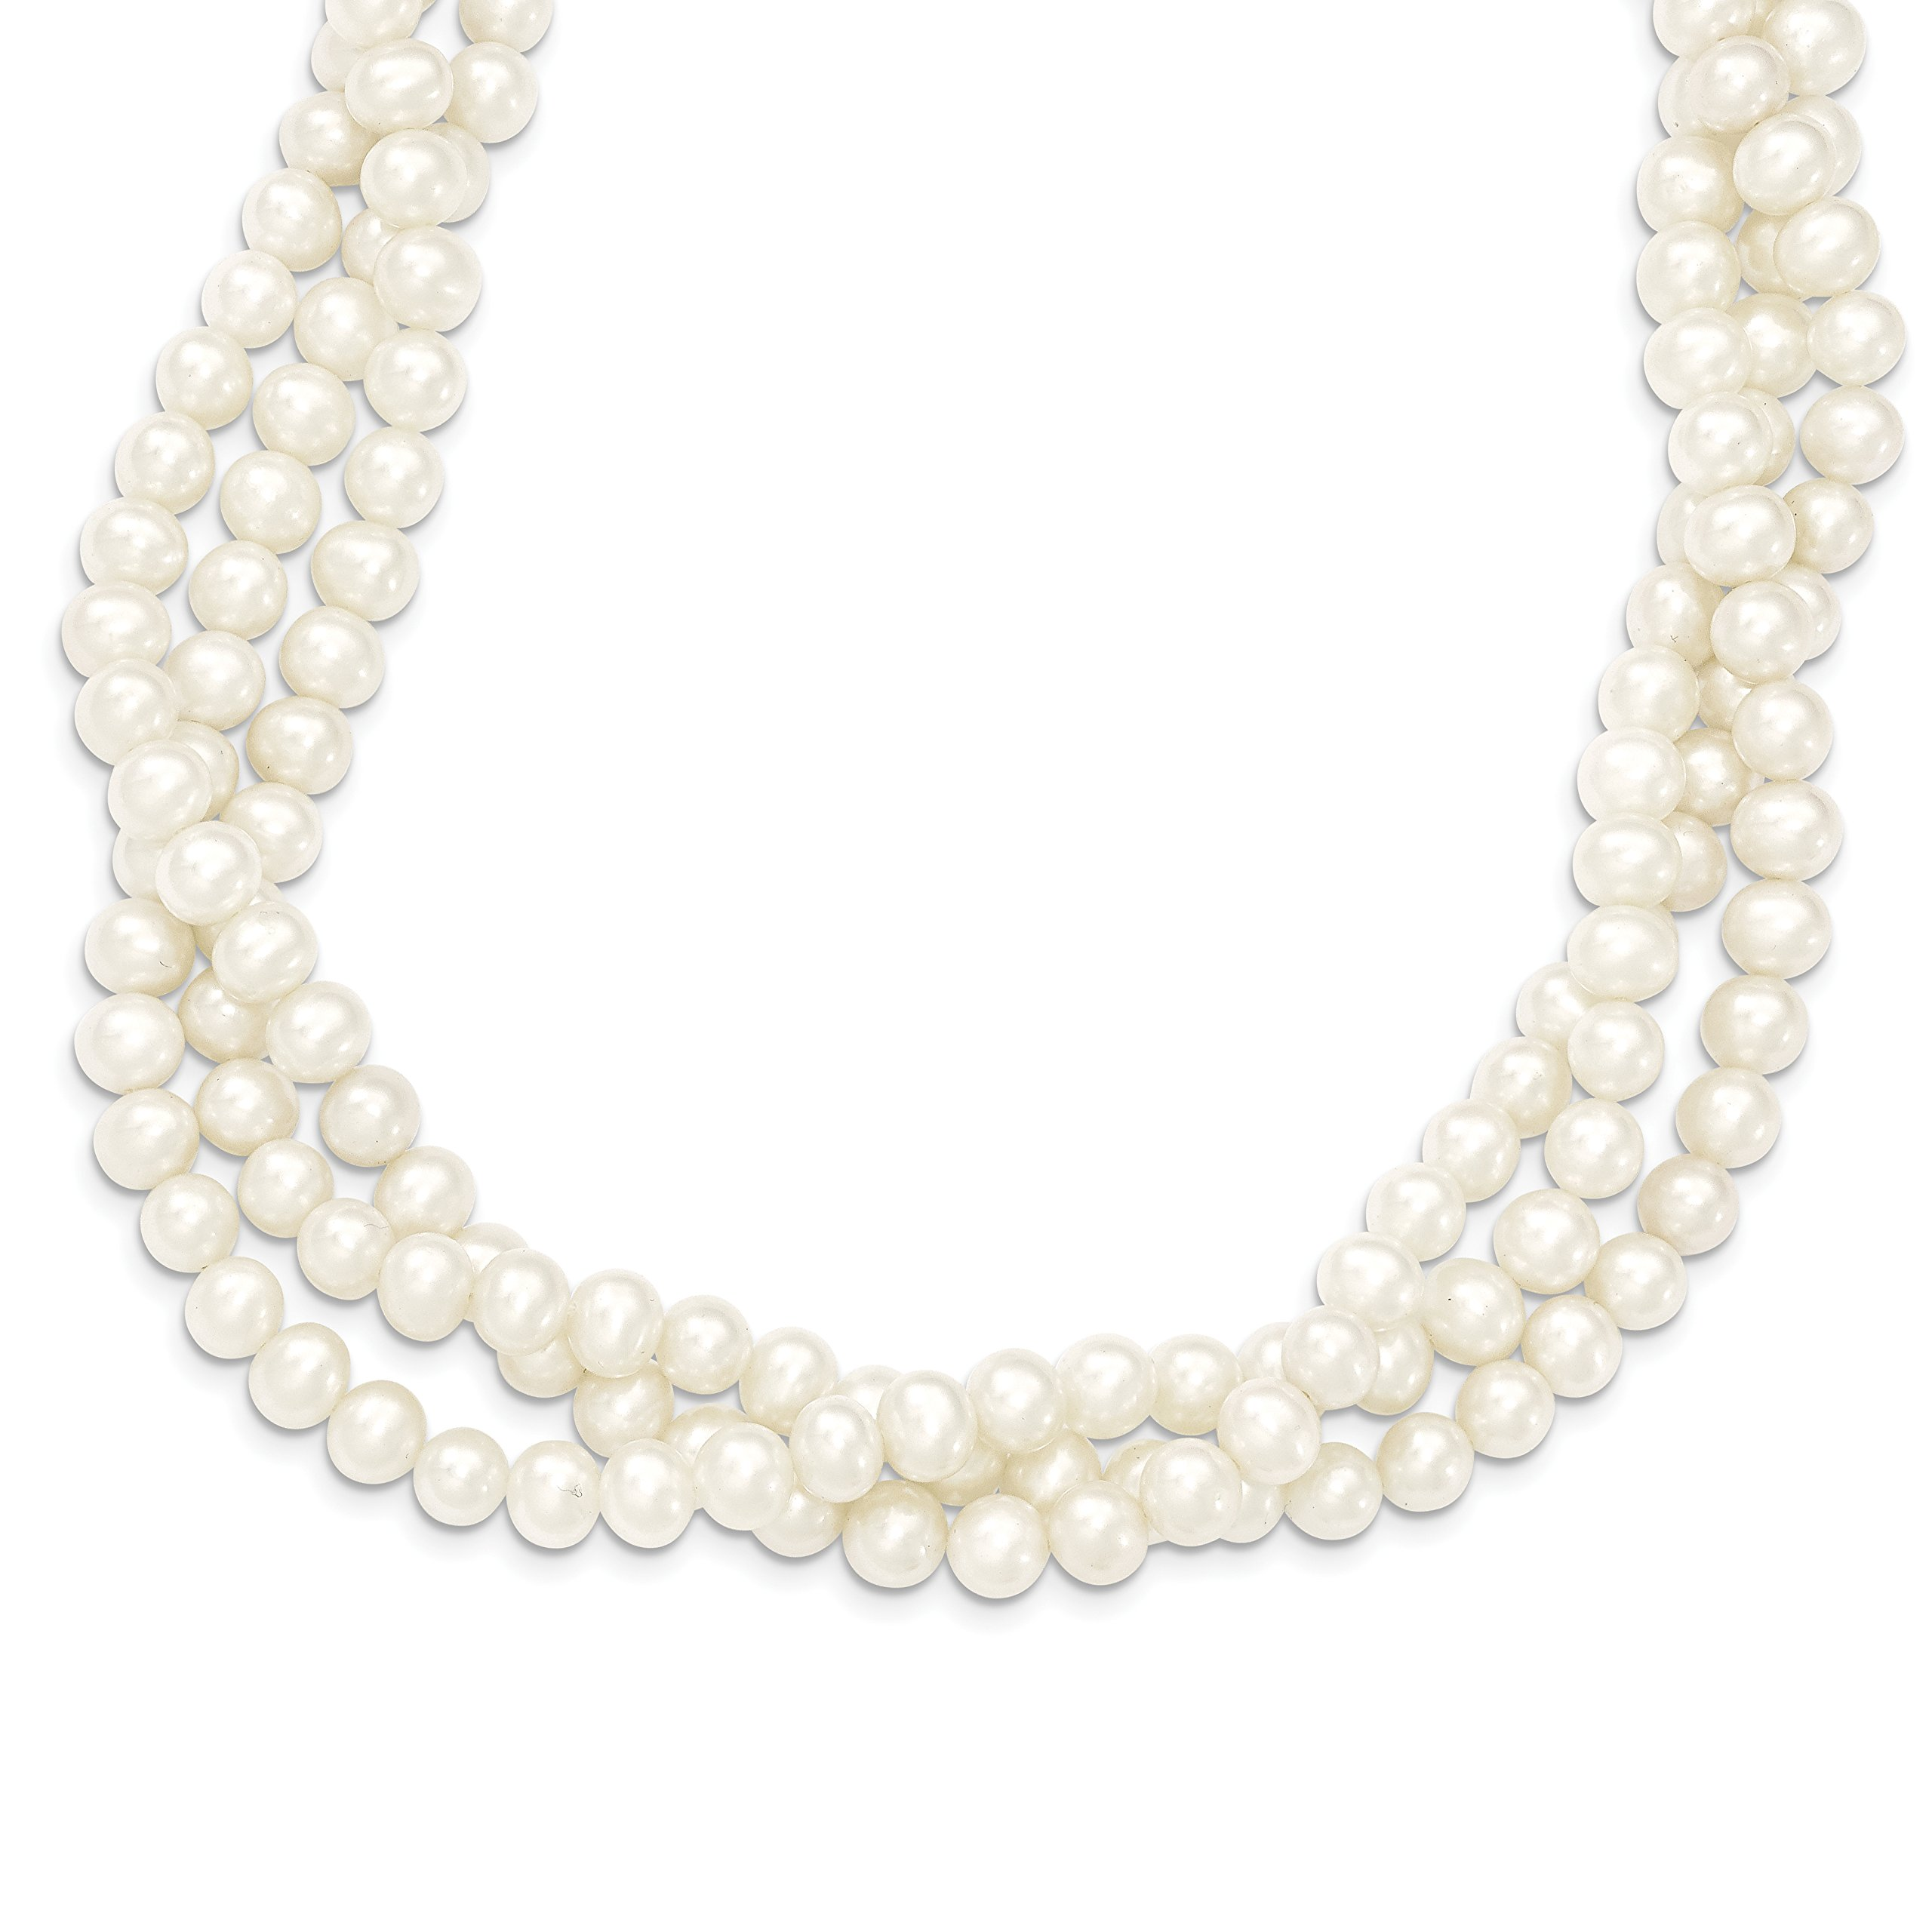 ICE CARATS 14k Yellow Gold 7mm White Freshwater Cultured 3 Strand Pearl Chain Necklace Fine Jewelry Gift Set For Women Heart